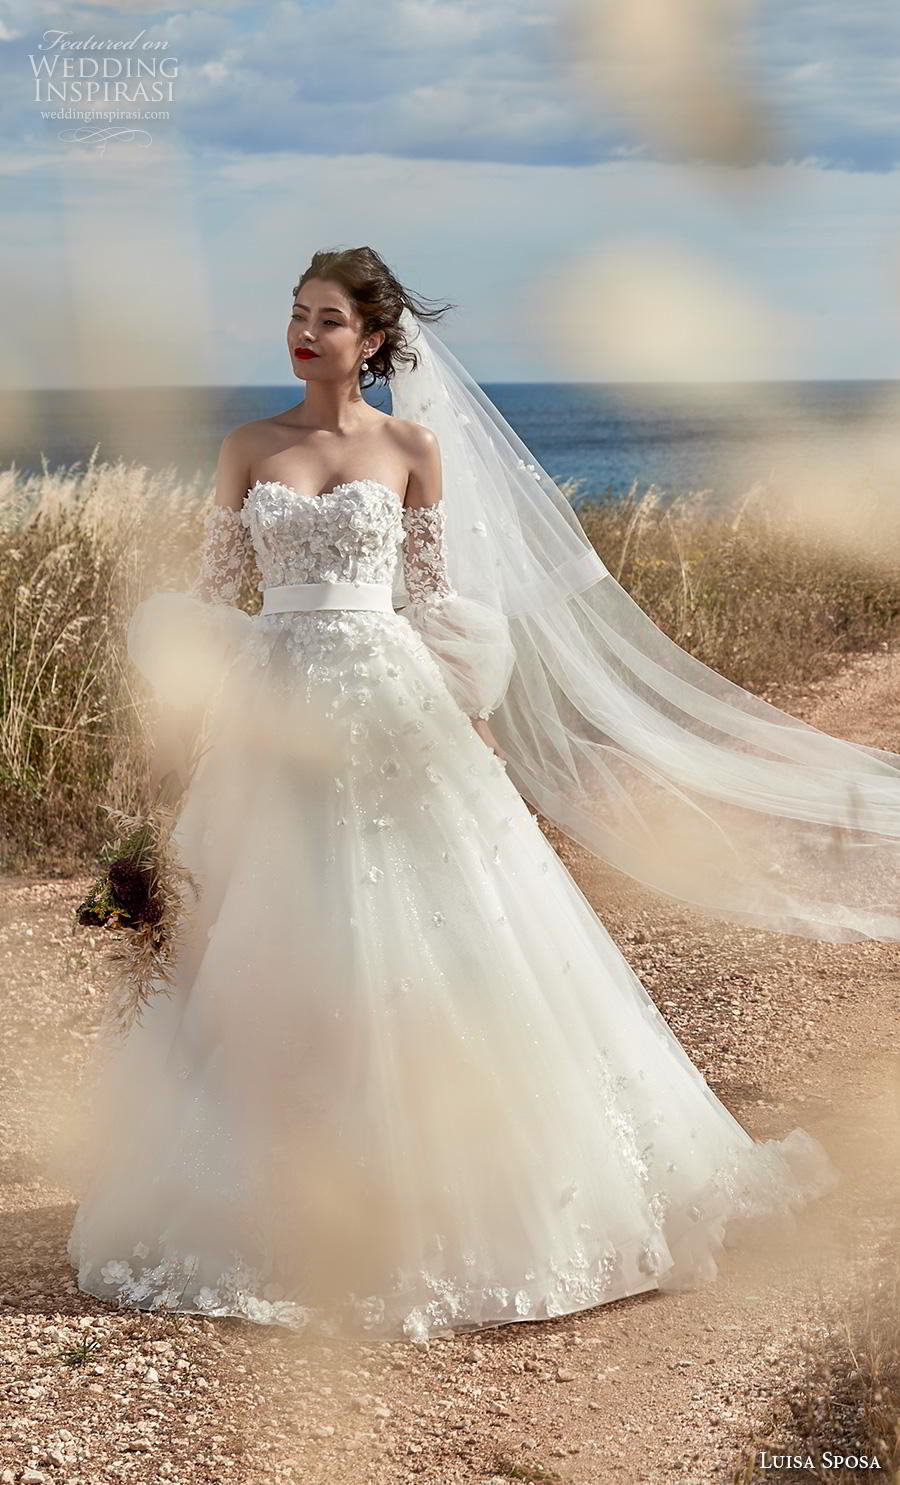 Luisa Sposa 2020 Wedding Dresses Wedding Inspirasi